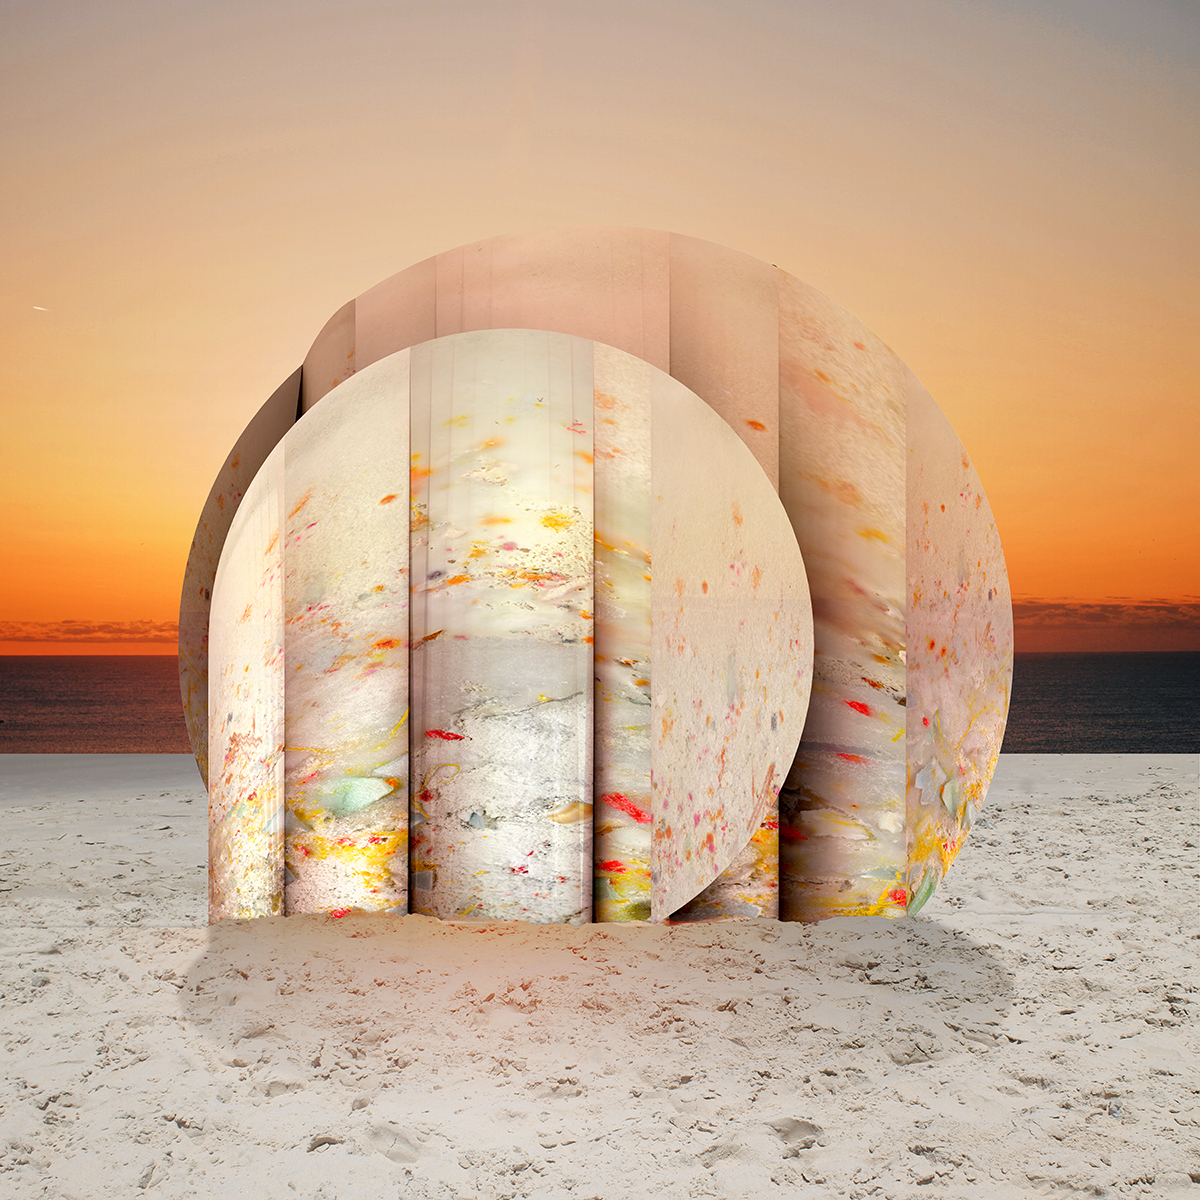 Rendering of a plastic rock on the beach